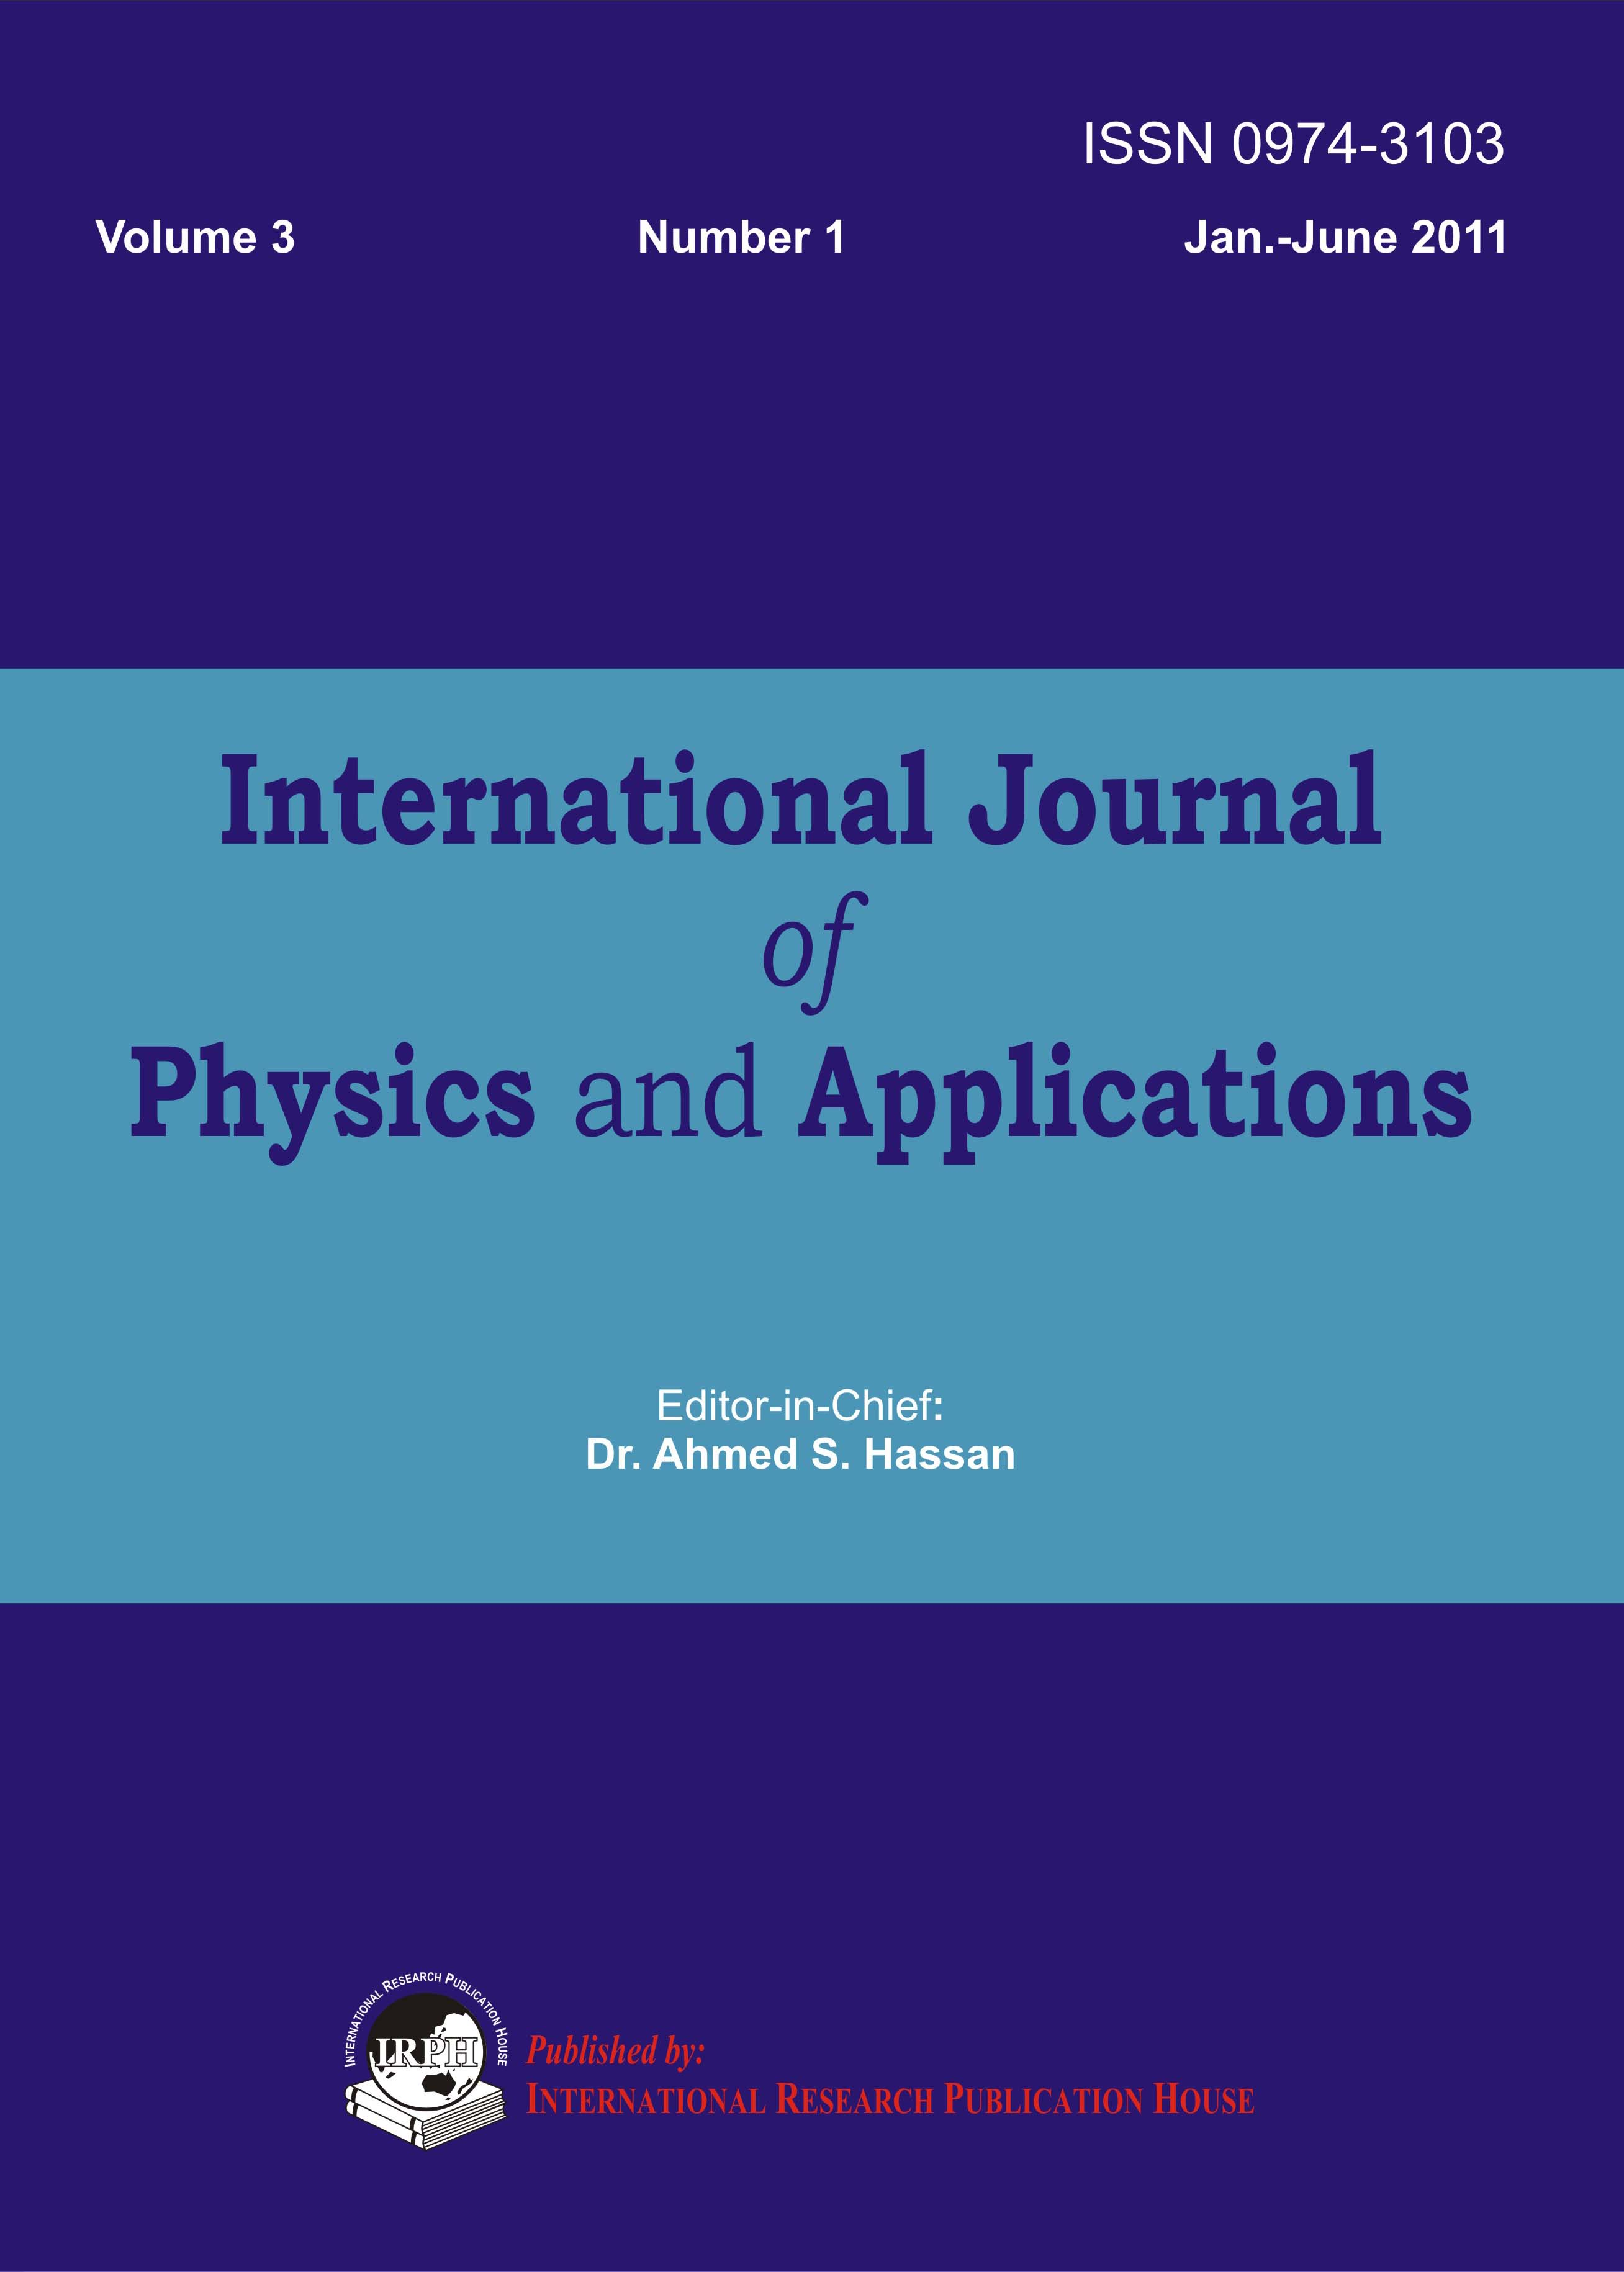 international research paper publication How to write an effective research paper • getting ready with data • first draft • structure of a scientific paper • selecting a journal • submission.